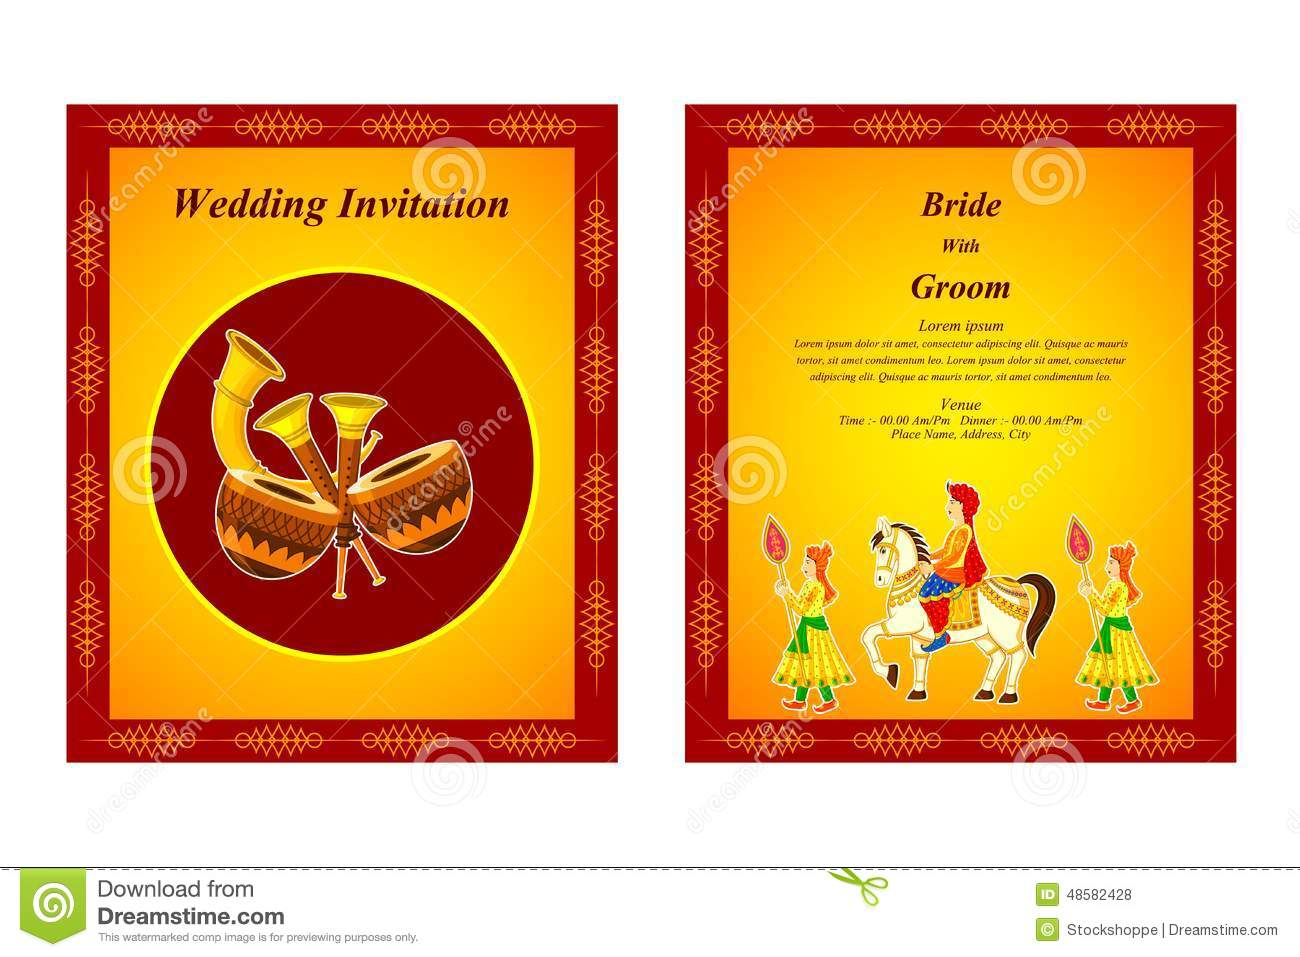 Free invitation card design template visualbrainsinfo